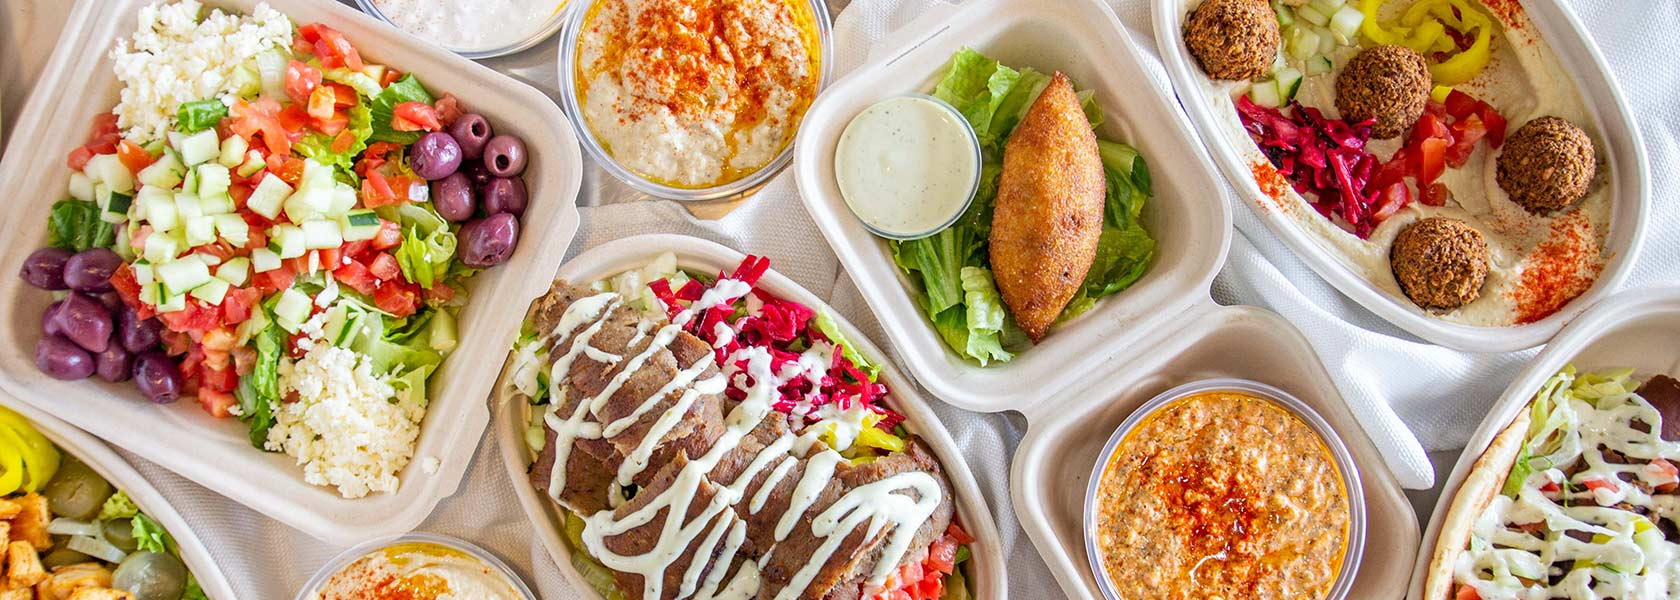 Array of Mediterranean dishes